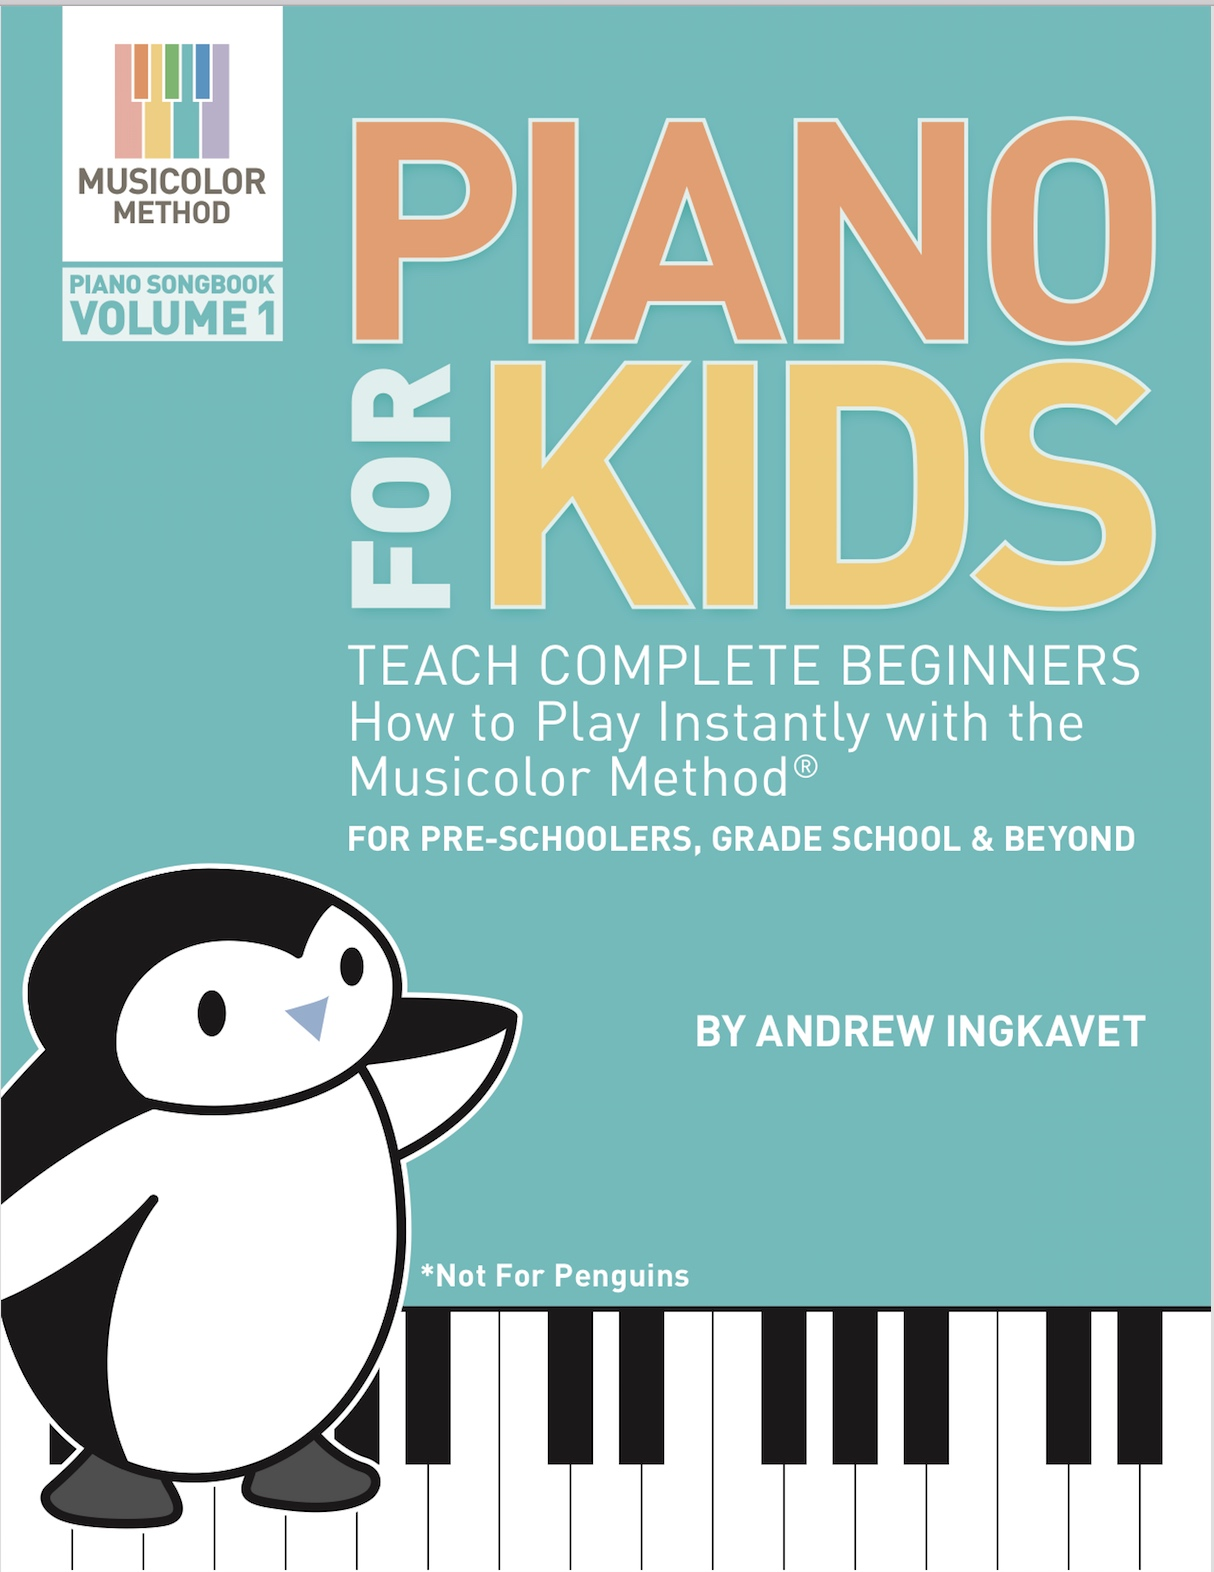 A Colorful Fun New Way To Learn Piano Is Here